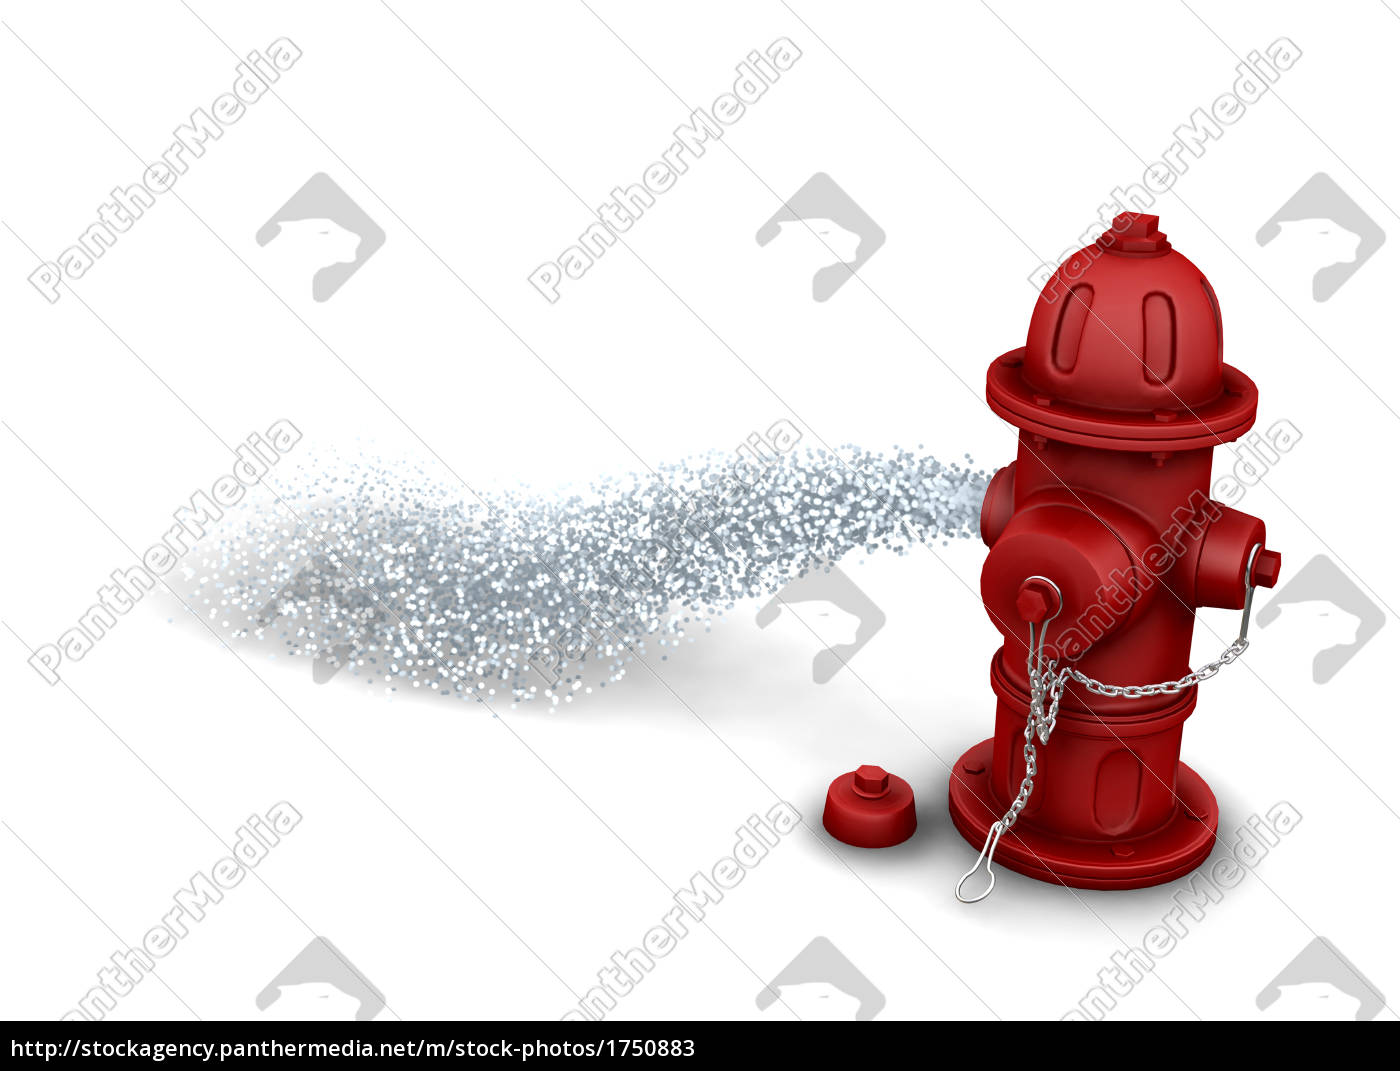 fire, hydrant - 1750883